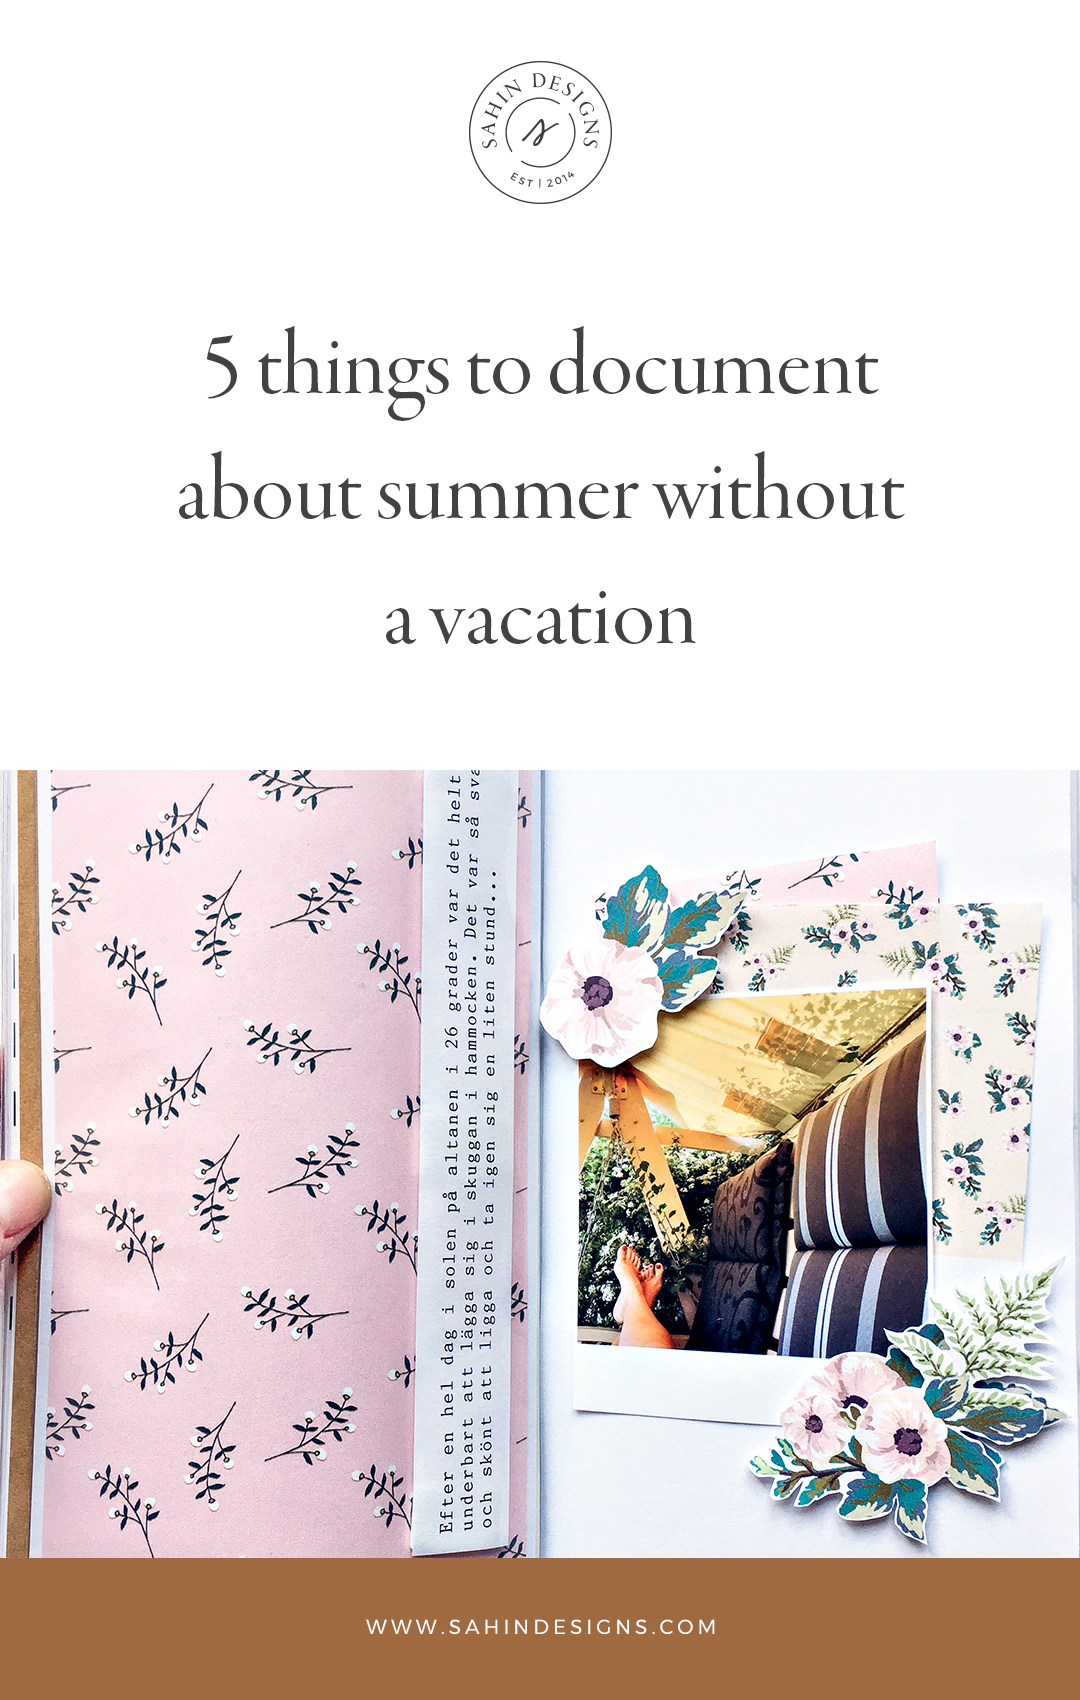 5 things to document about summer without a vacation - Sahin Designs